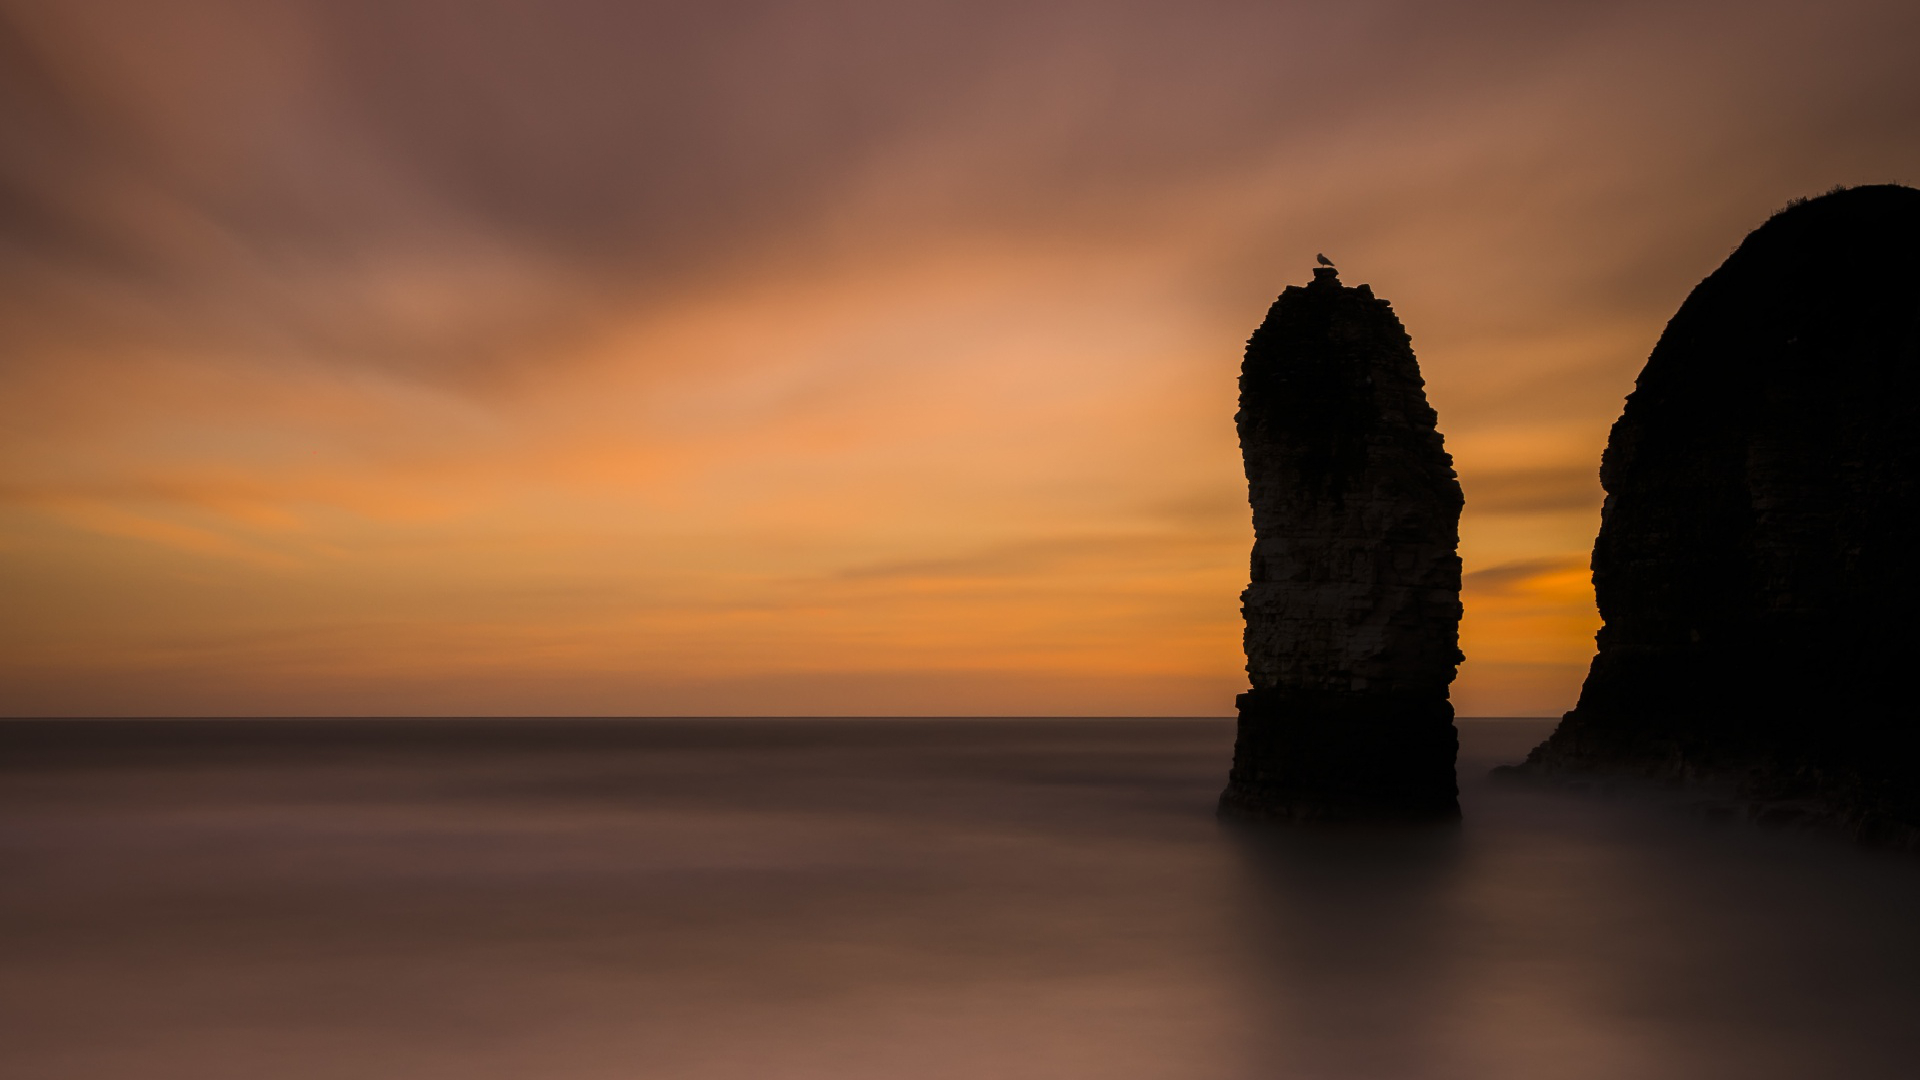 england,unitedkingdom,eastyorkshire,straits,flamboroughhead,flock,slew,sunrise,dawn,gull,longexposure,good deal,cockcrow,head,nature,boss,imagelogger,flamborough,stack,samsung,universe,chief,seascape,whole slew